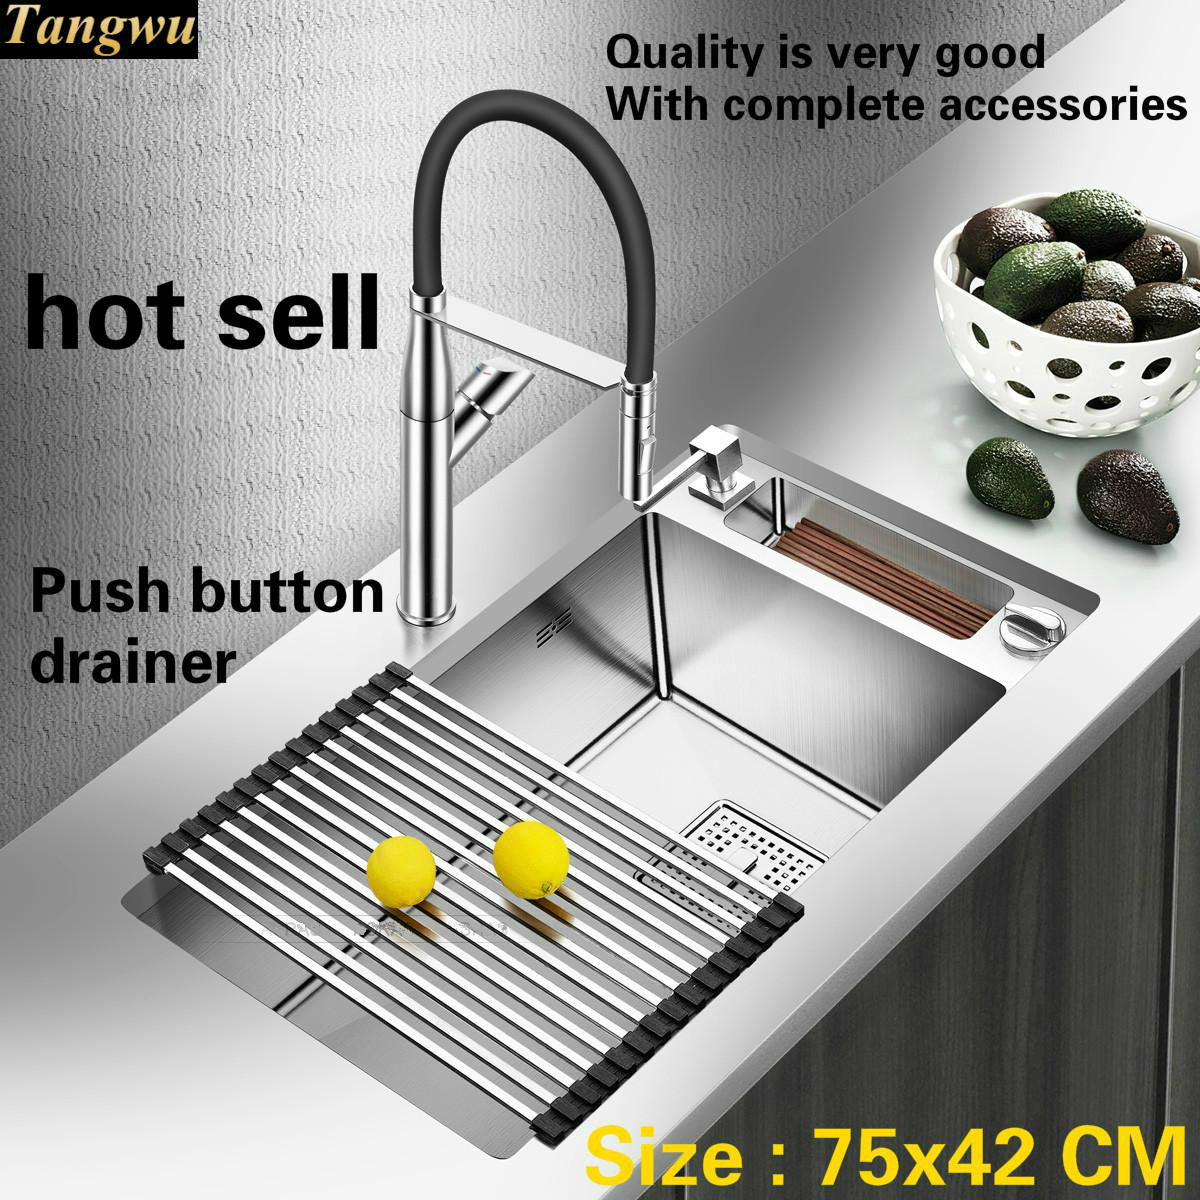 Free Shipping Apartment Big Kitchen Manual Sink Single Trough Dish Washing 304 Stainless Steel Luxury Hot Sell 750x420 Cm